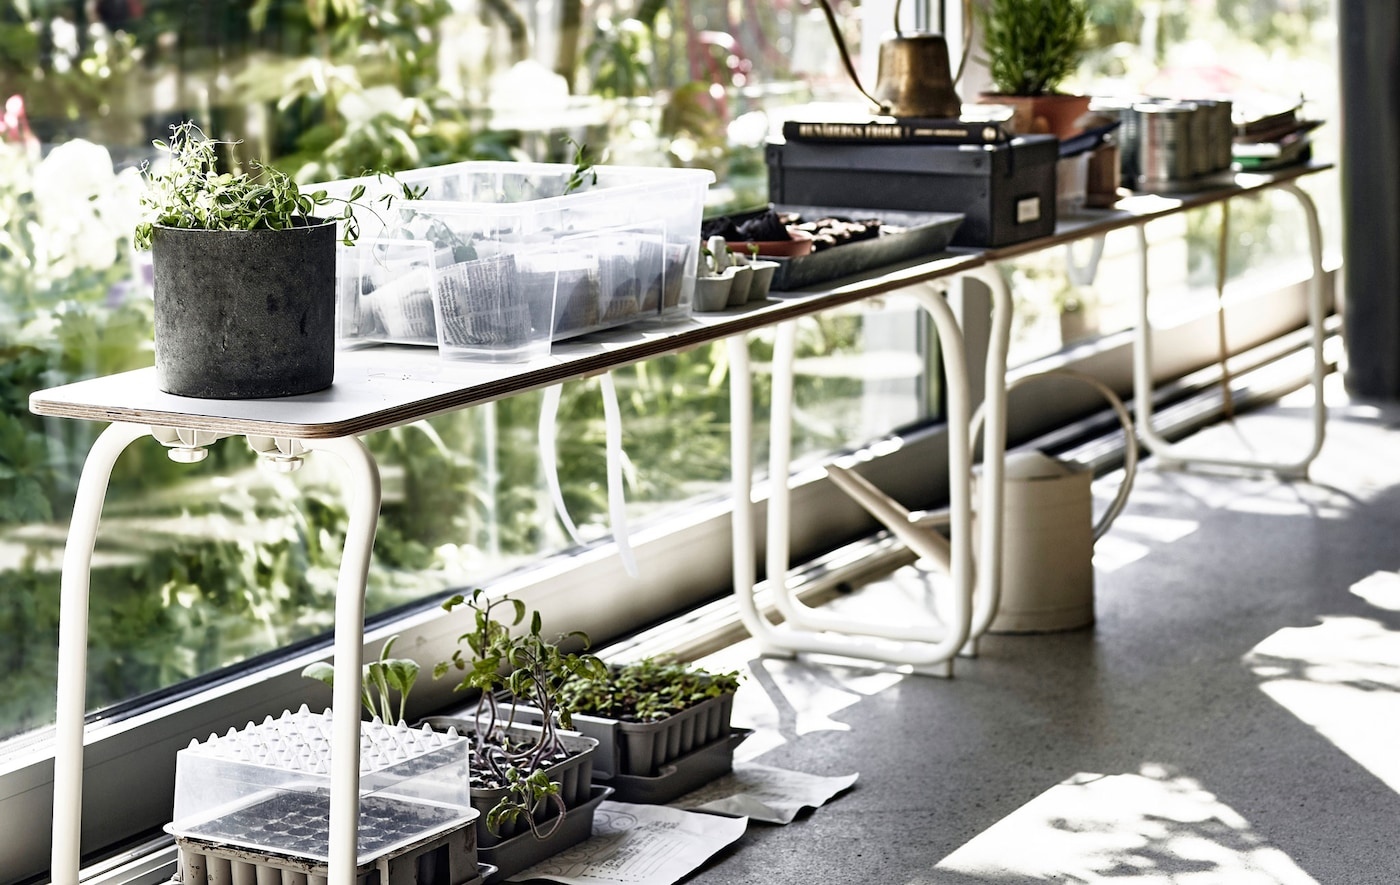 Charmant Karin And Cord Share Their Tips For Greener Urban Living   IKEA